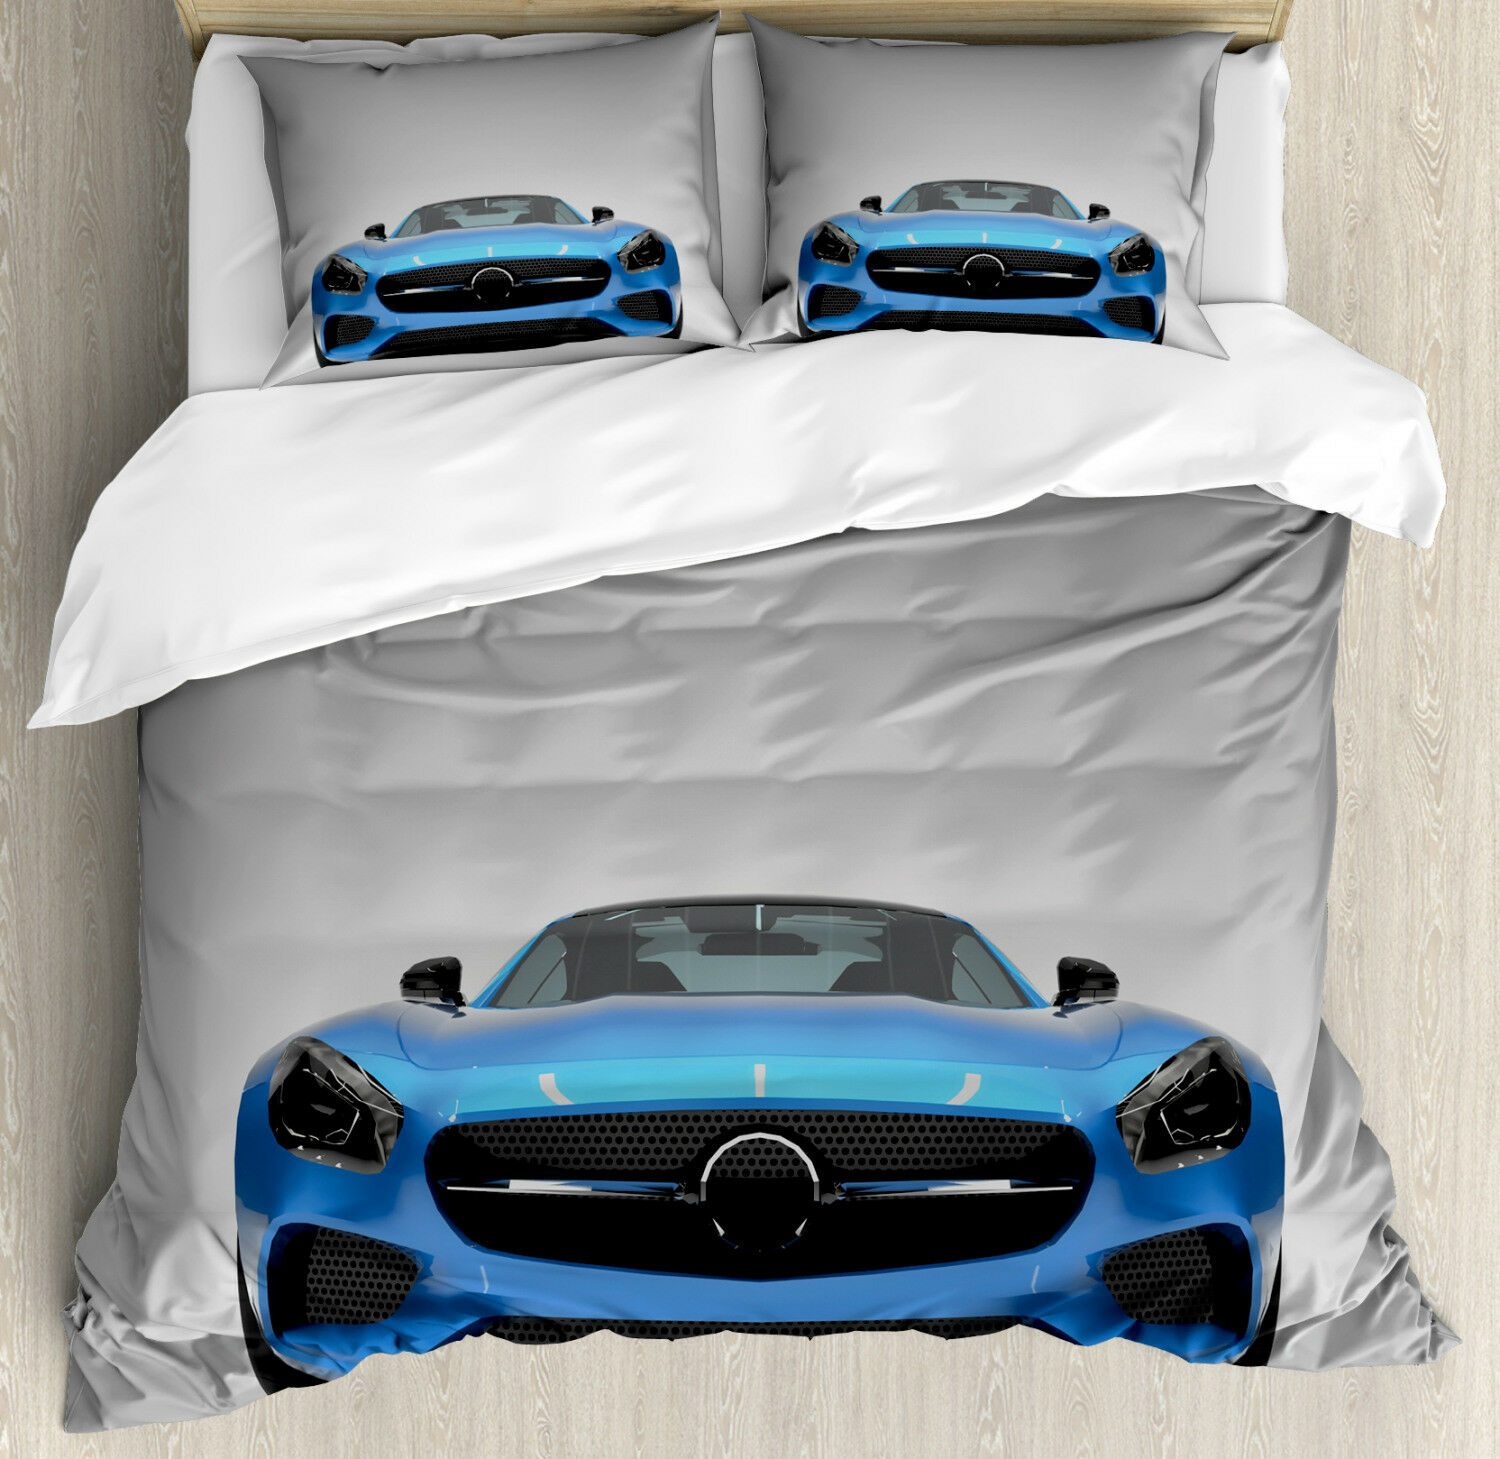 Teen Room Duvet Cover Set with Pillow Shams Sports Vehicle Auto Print